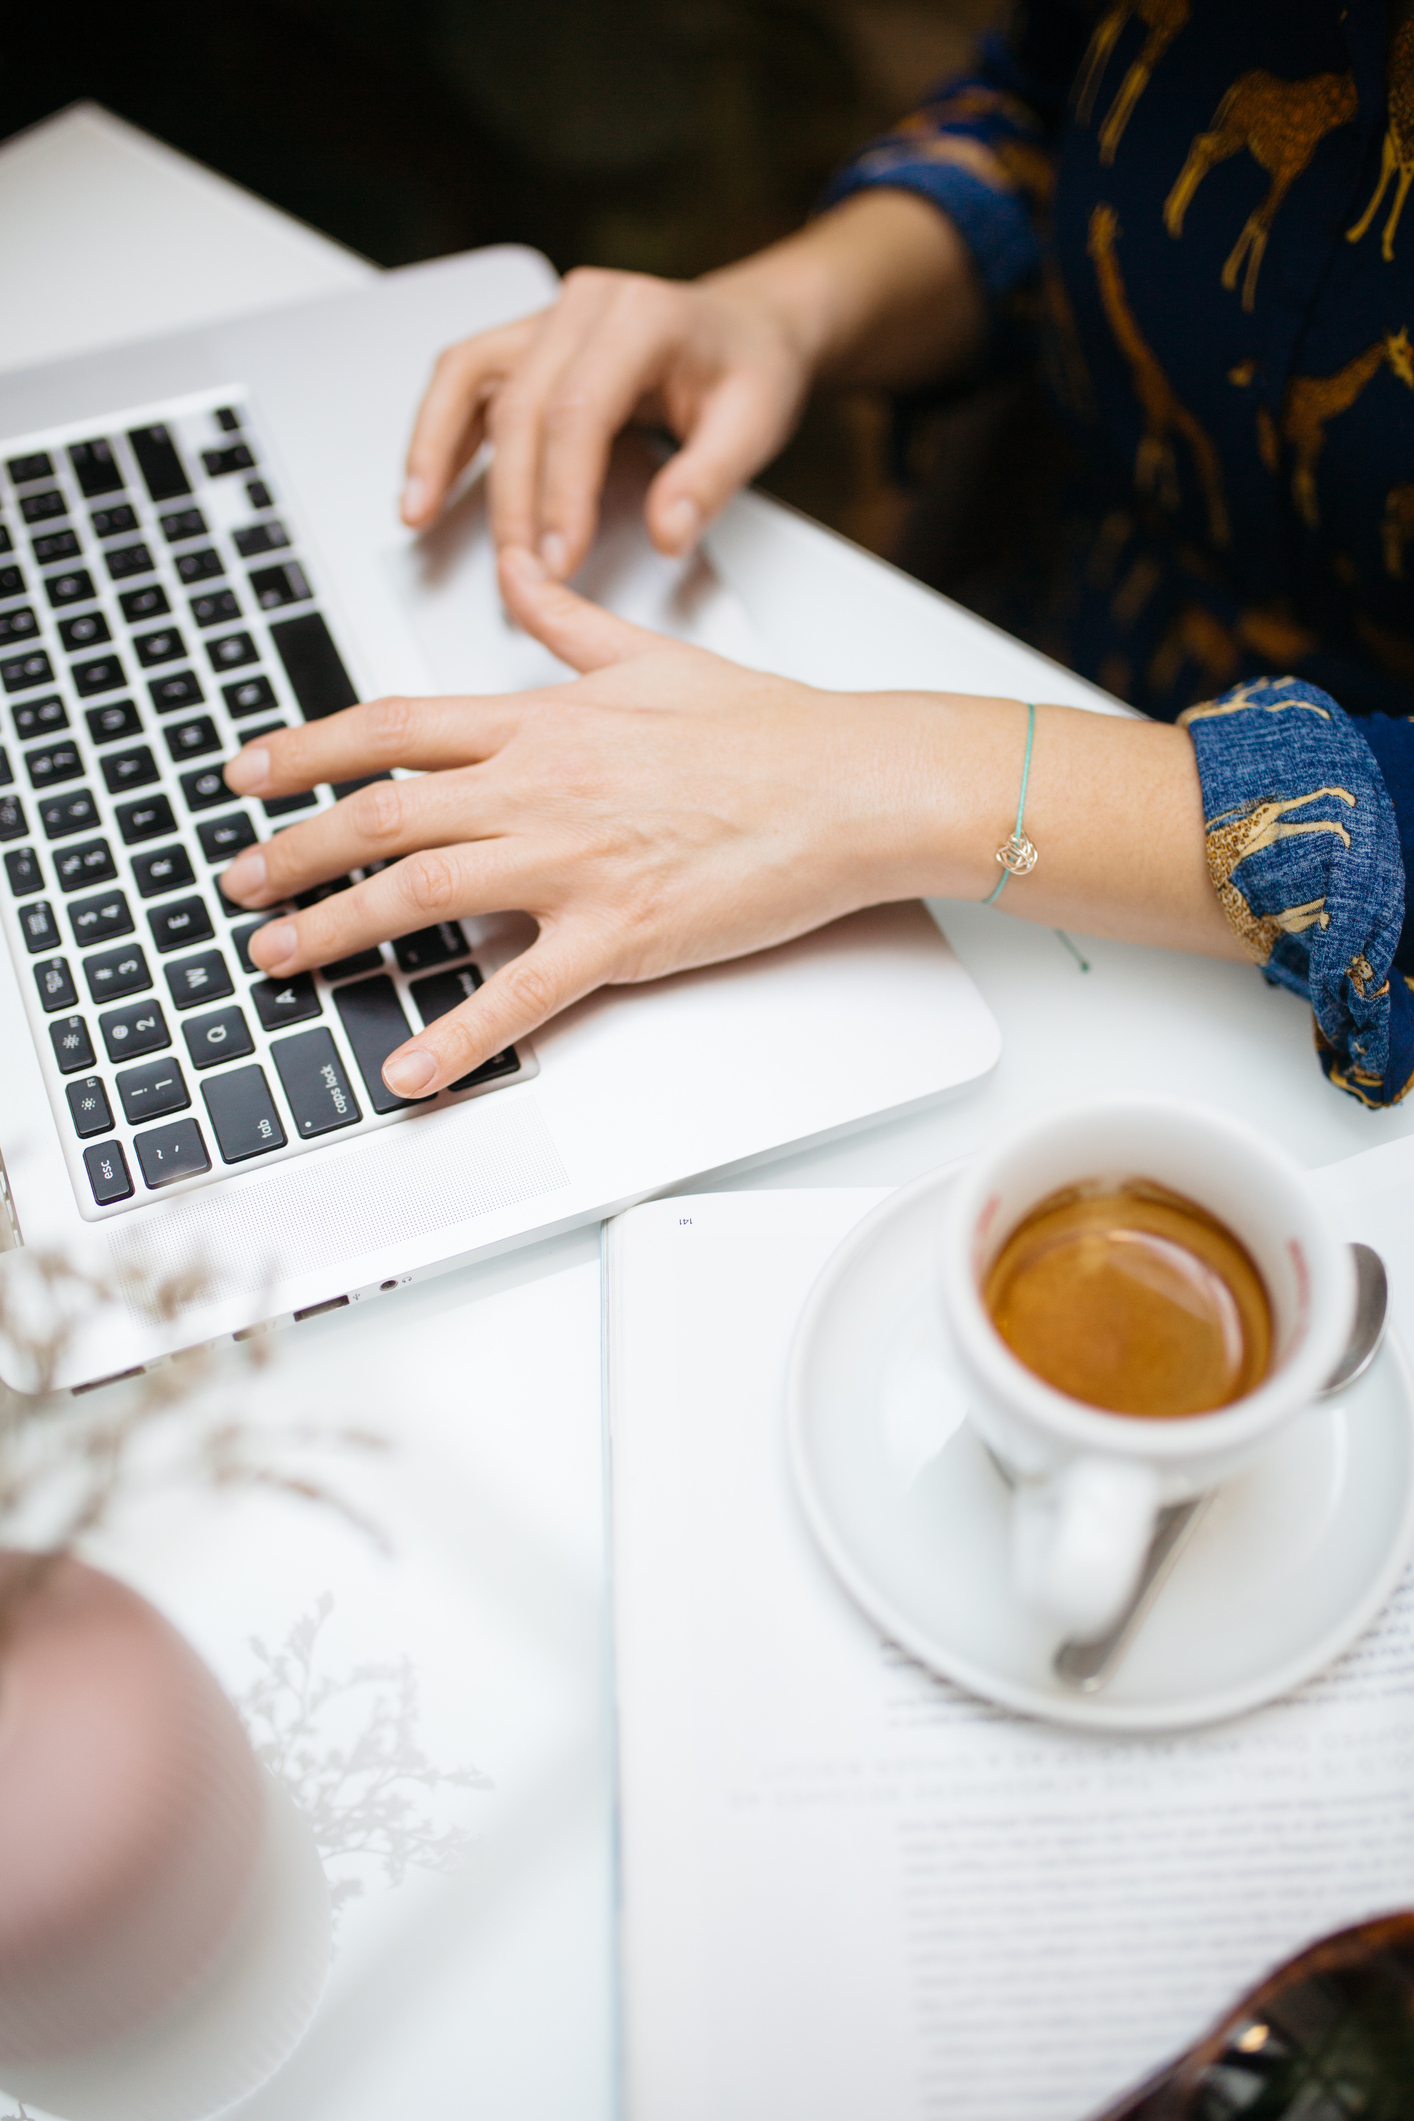 Woman working on laptop beside cup of coffee, hand on keyboard close up